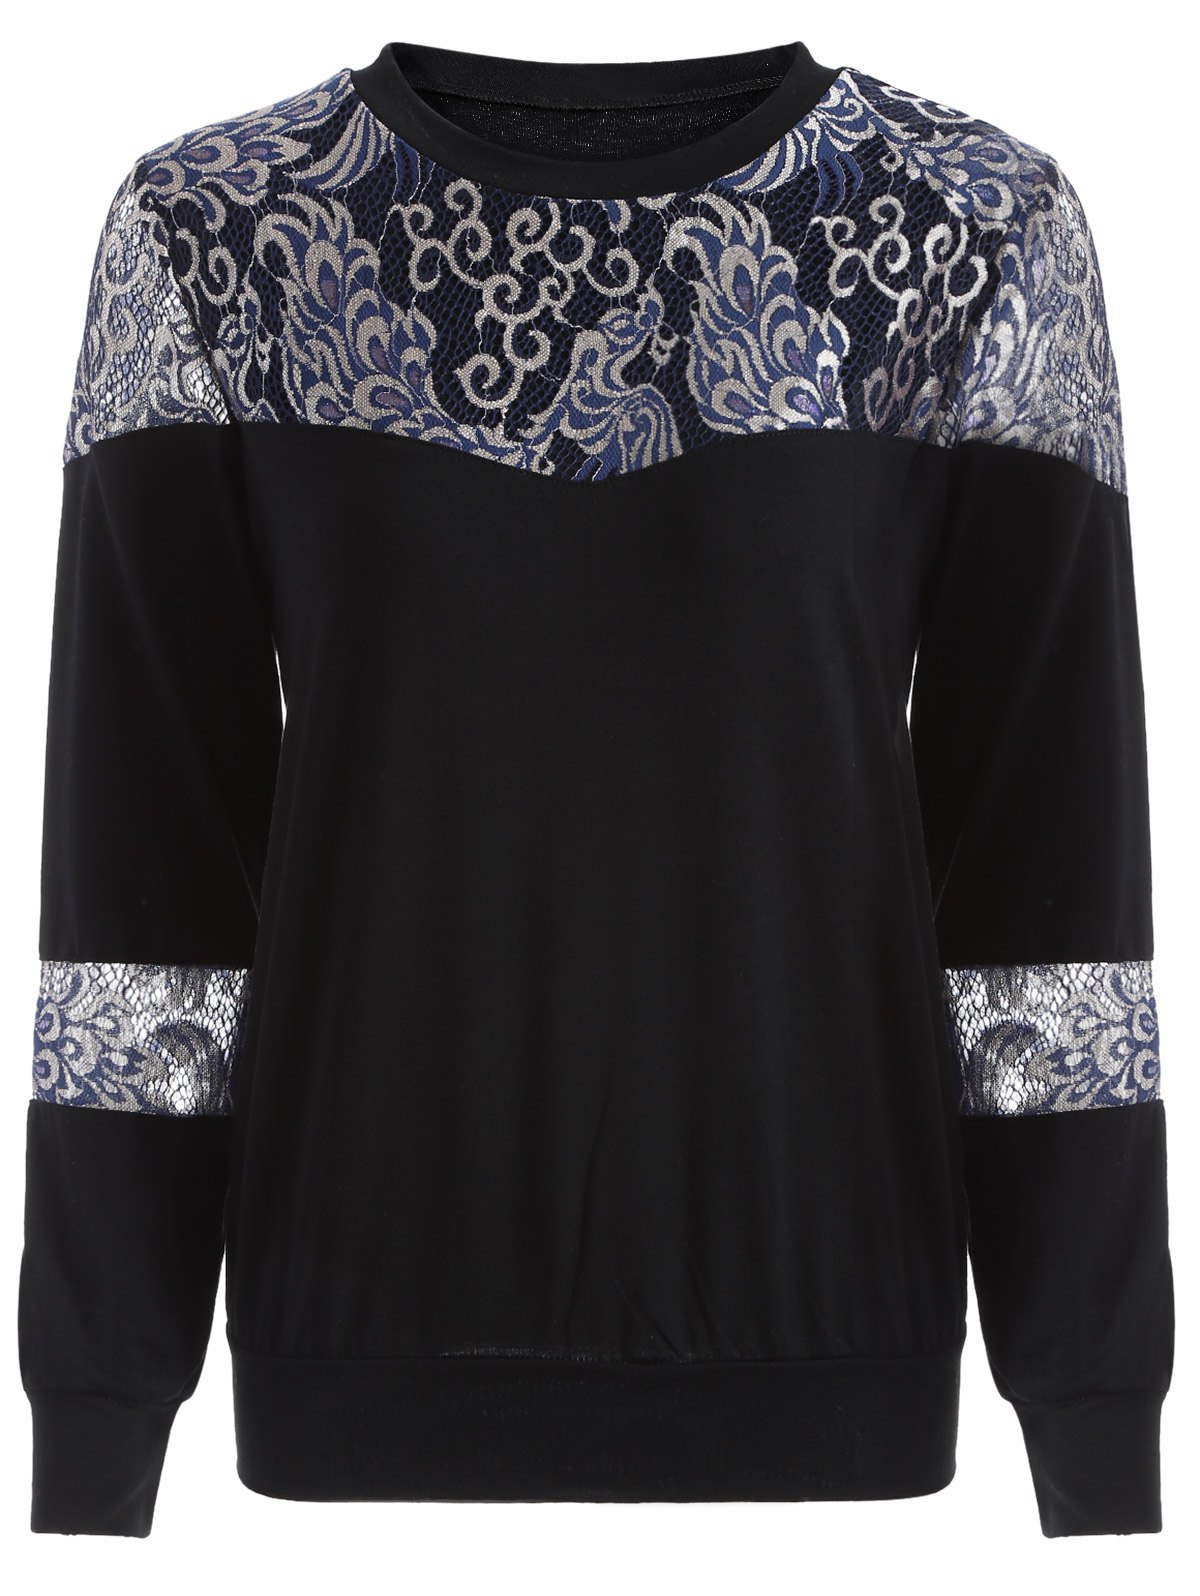 Shop Loose Embroidered Lace Spliced Tee